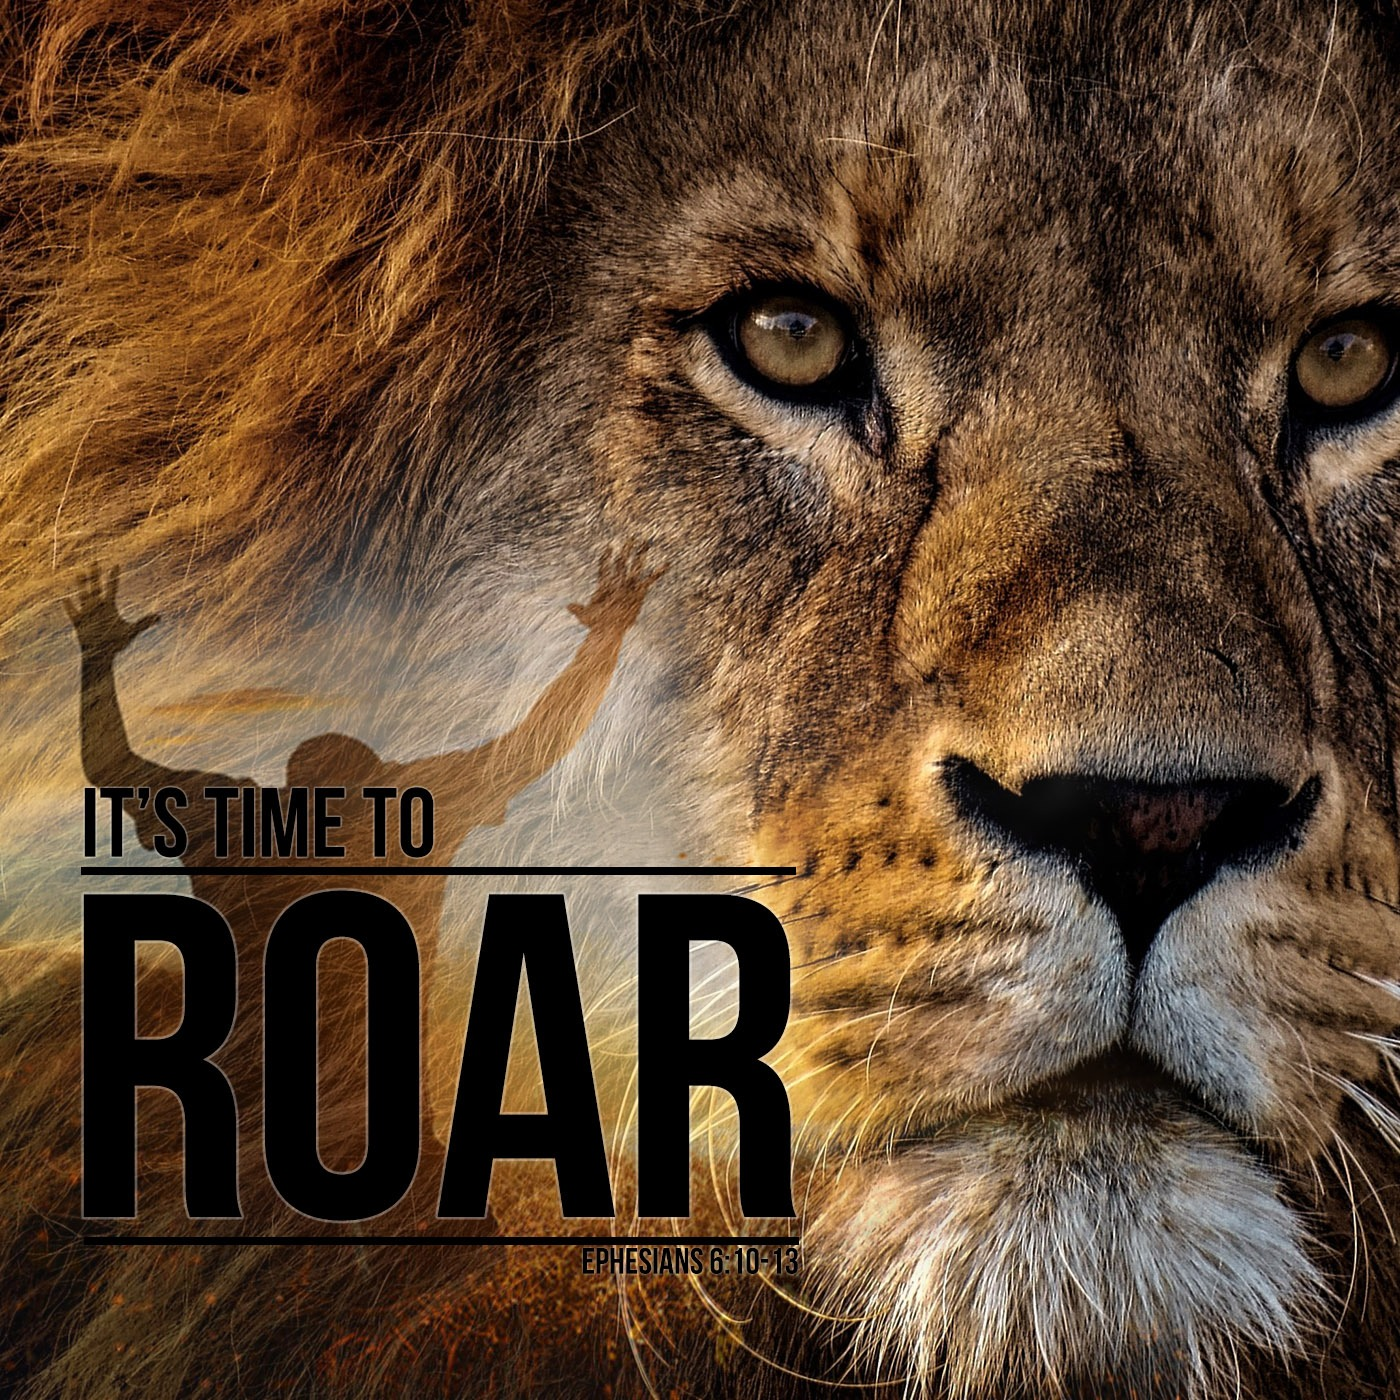 Its Time to Roar - KBOE Radio Series with Mike Sereg